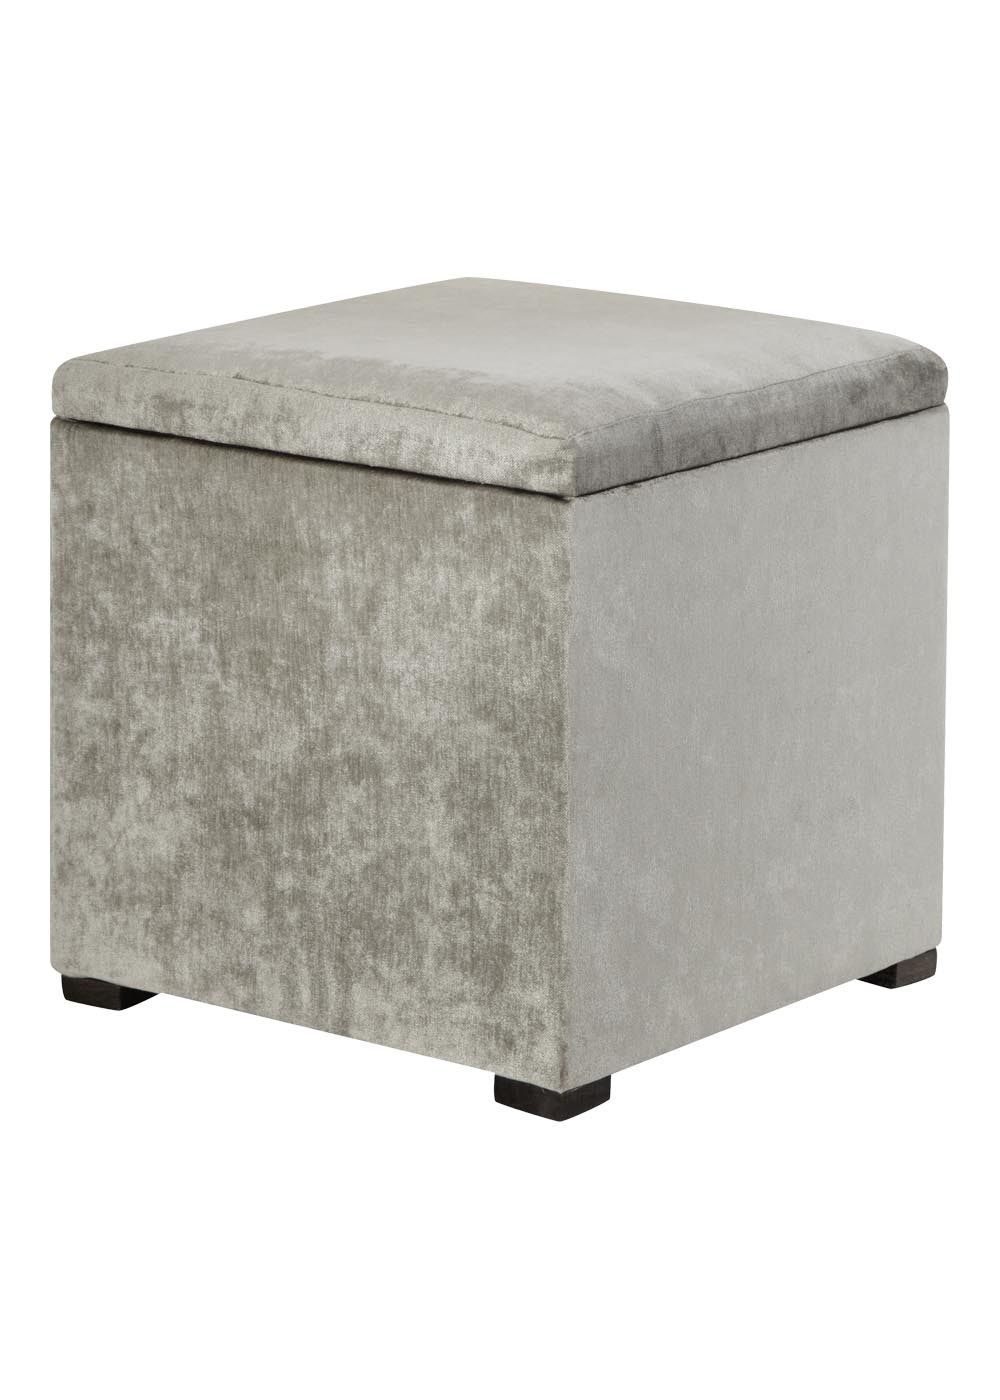 Storage footstool 40cm x 38cm matalan 25 mink grey dressing table vanity stool home - Stool for vanity table ...